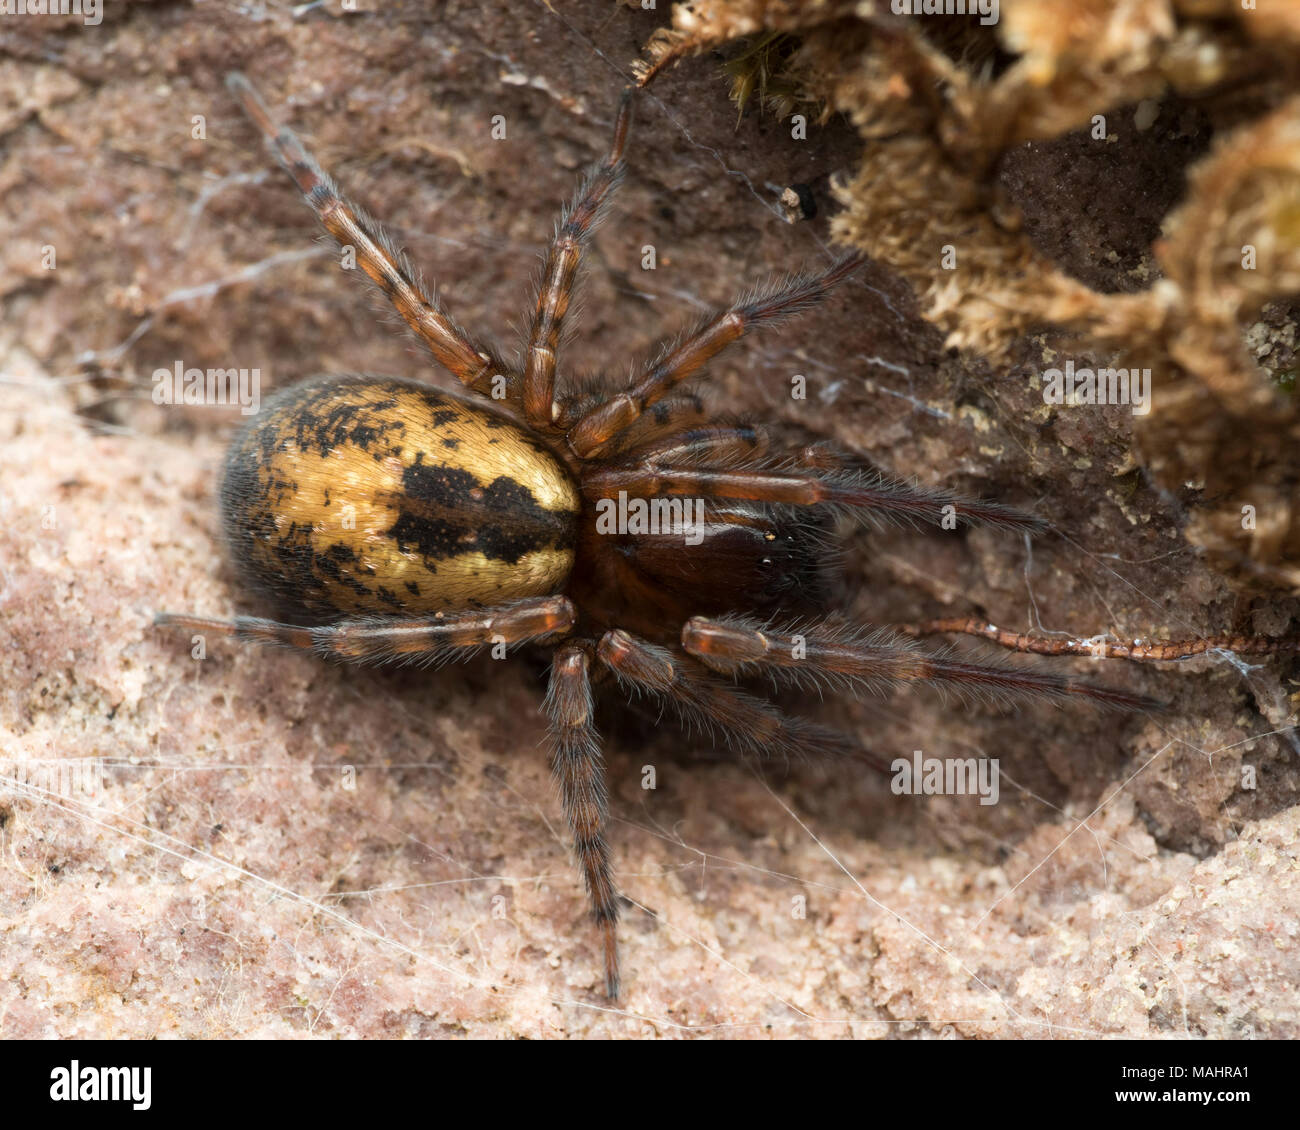 Dorsal view of Lace-web Spider or Lace-weaver spider(Amaurobius sp.) underneath loose bark. Tipperary, Ireland - Stock Image